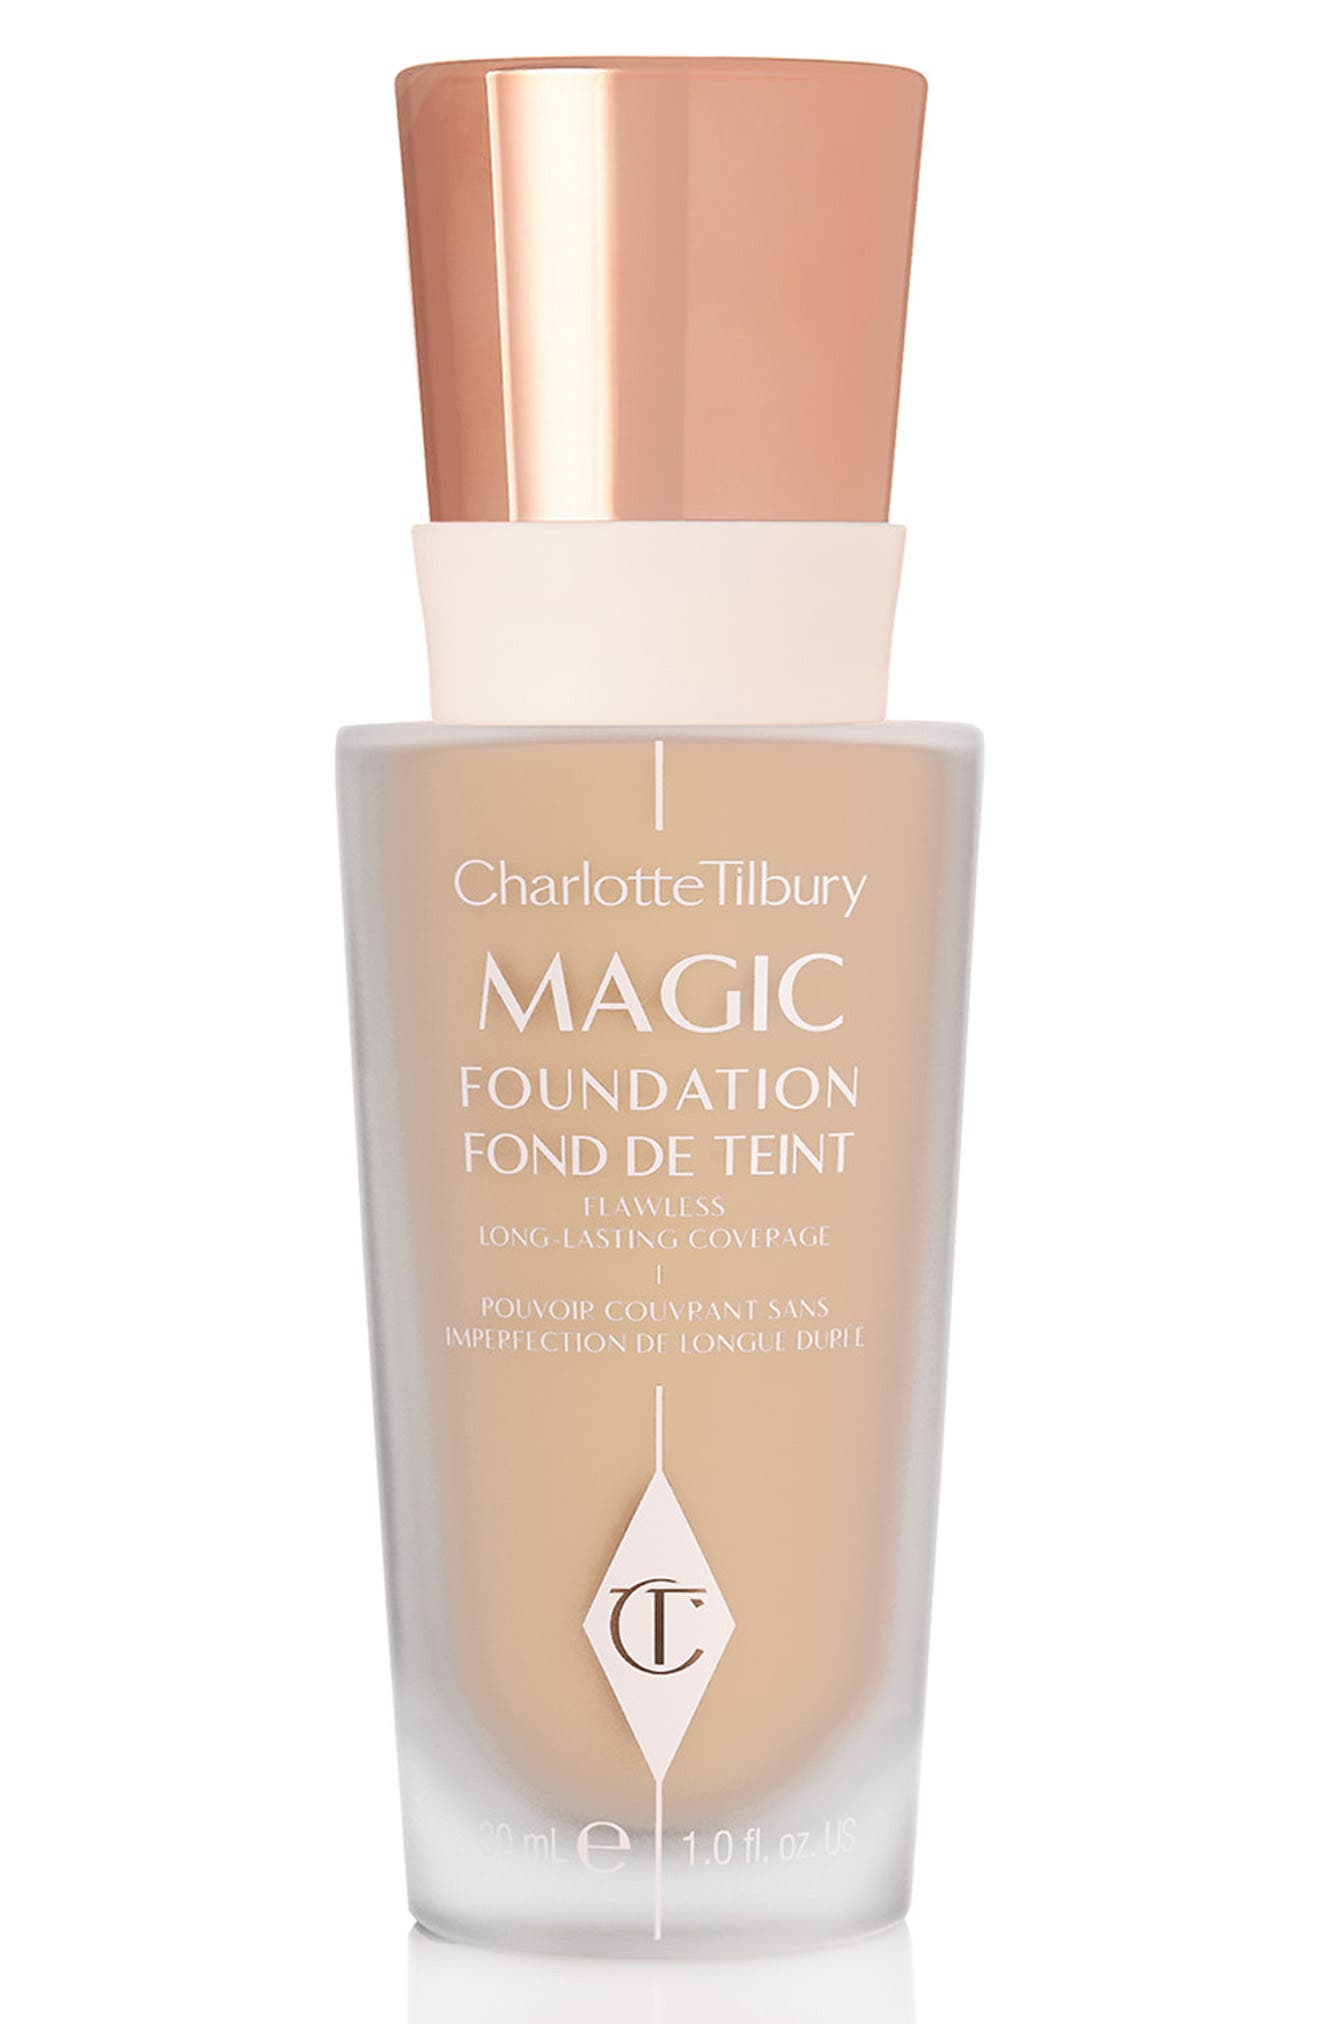 CHARLOTTE TILBURY MAGIC FOUNDATION BROAD SPECTRUM SPF 15 - 6 MEDIUM